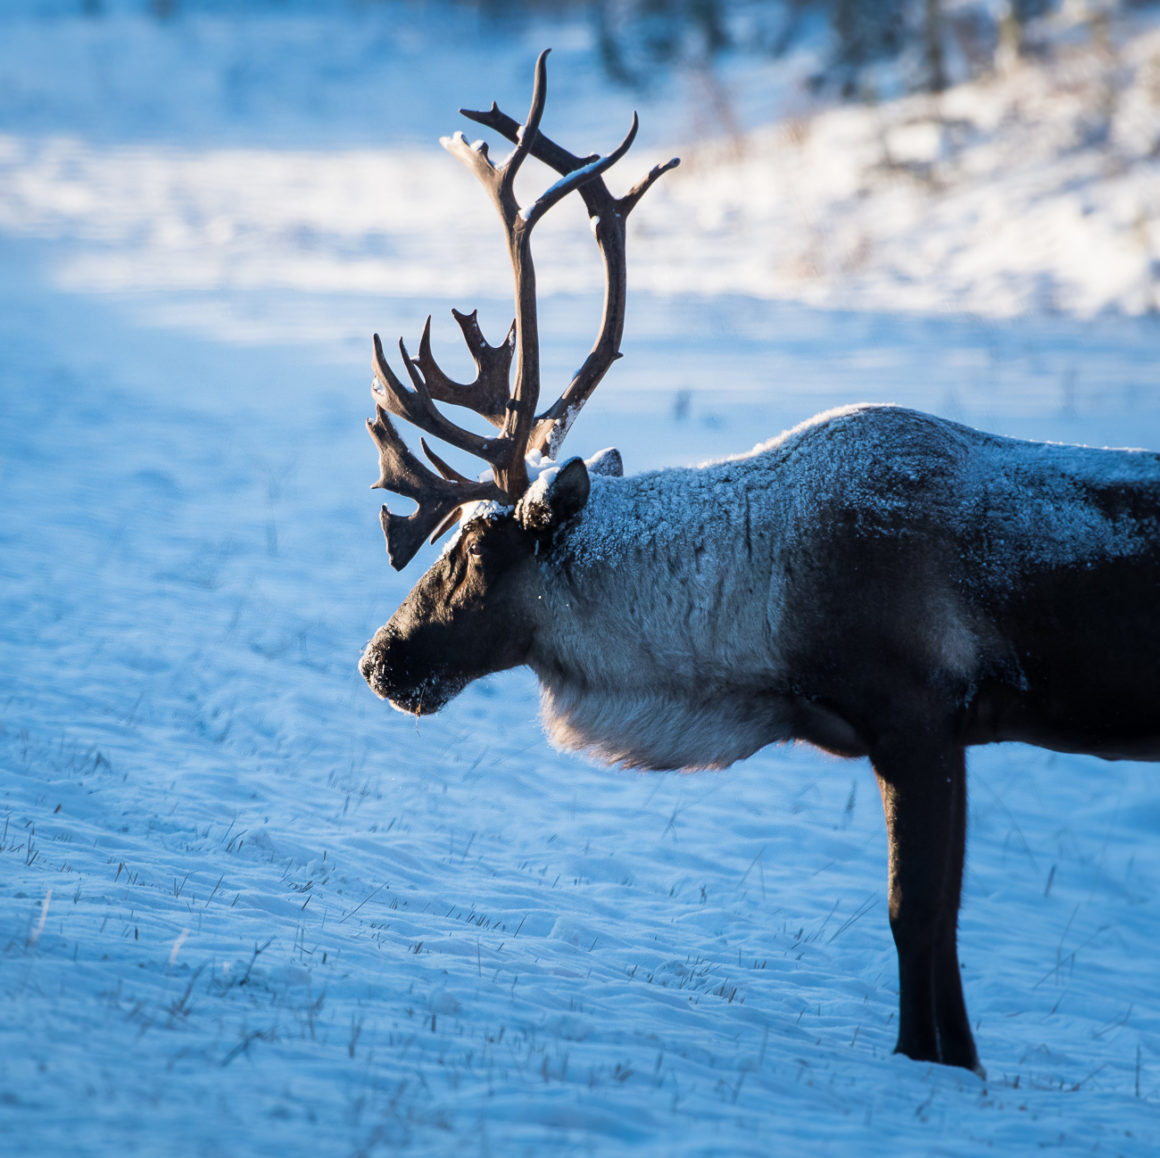 Mountain caribou in the snow.